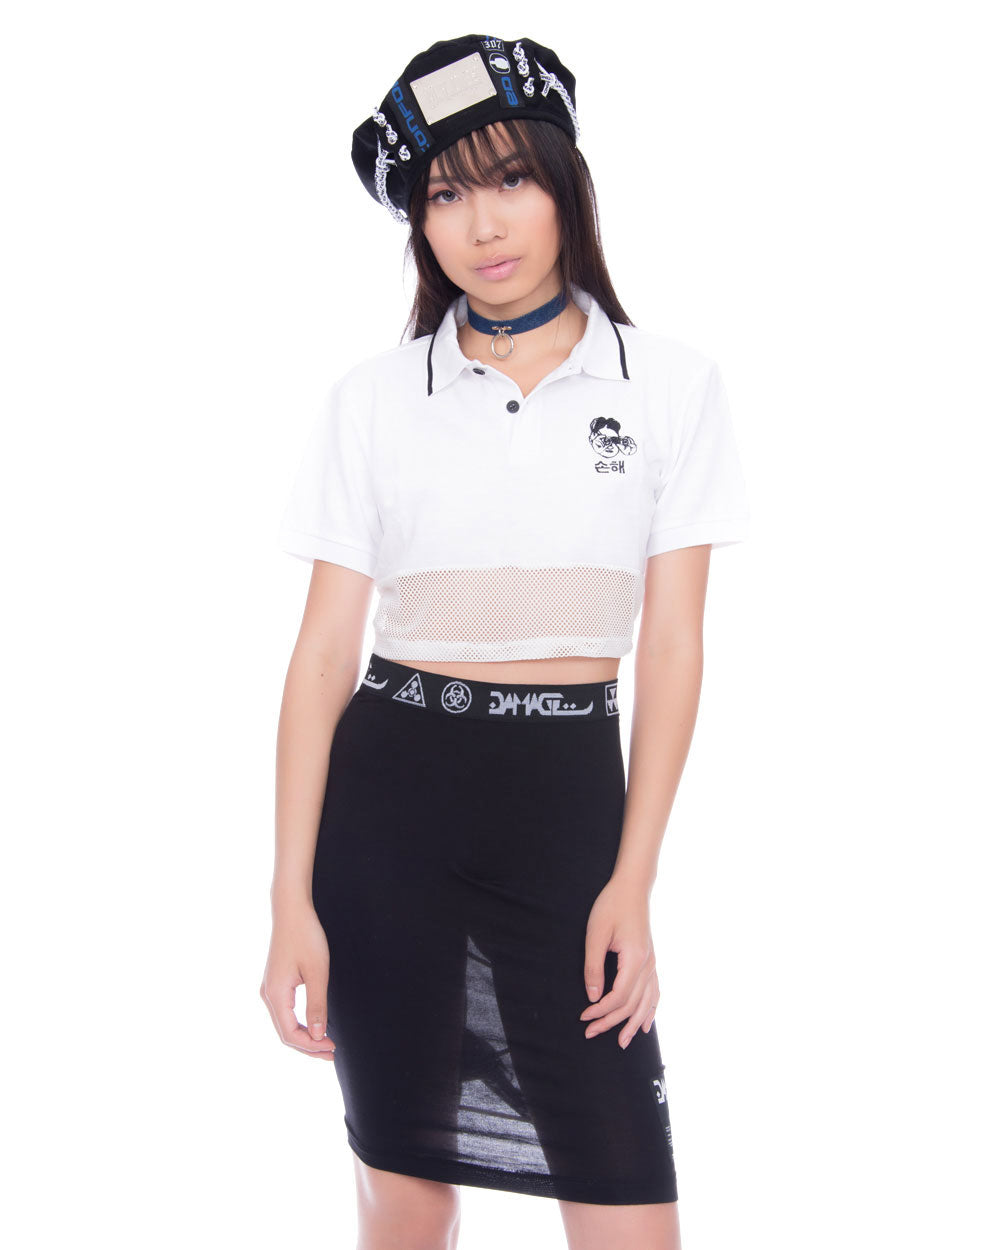 PYONGYANG LEADER CROPPED WHITE POLO TEE - Eros Mortis